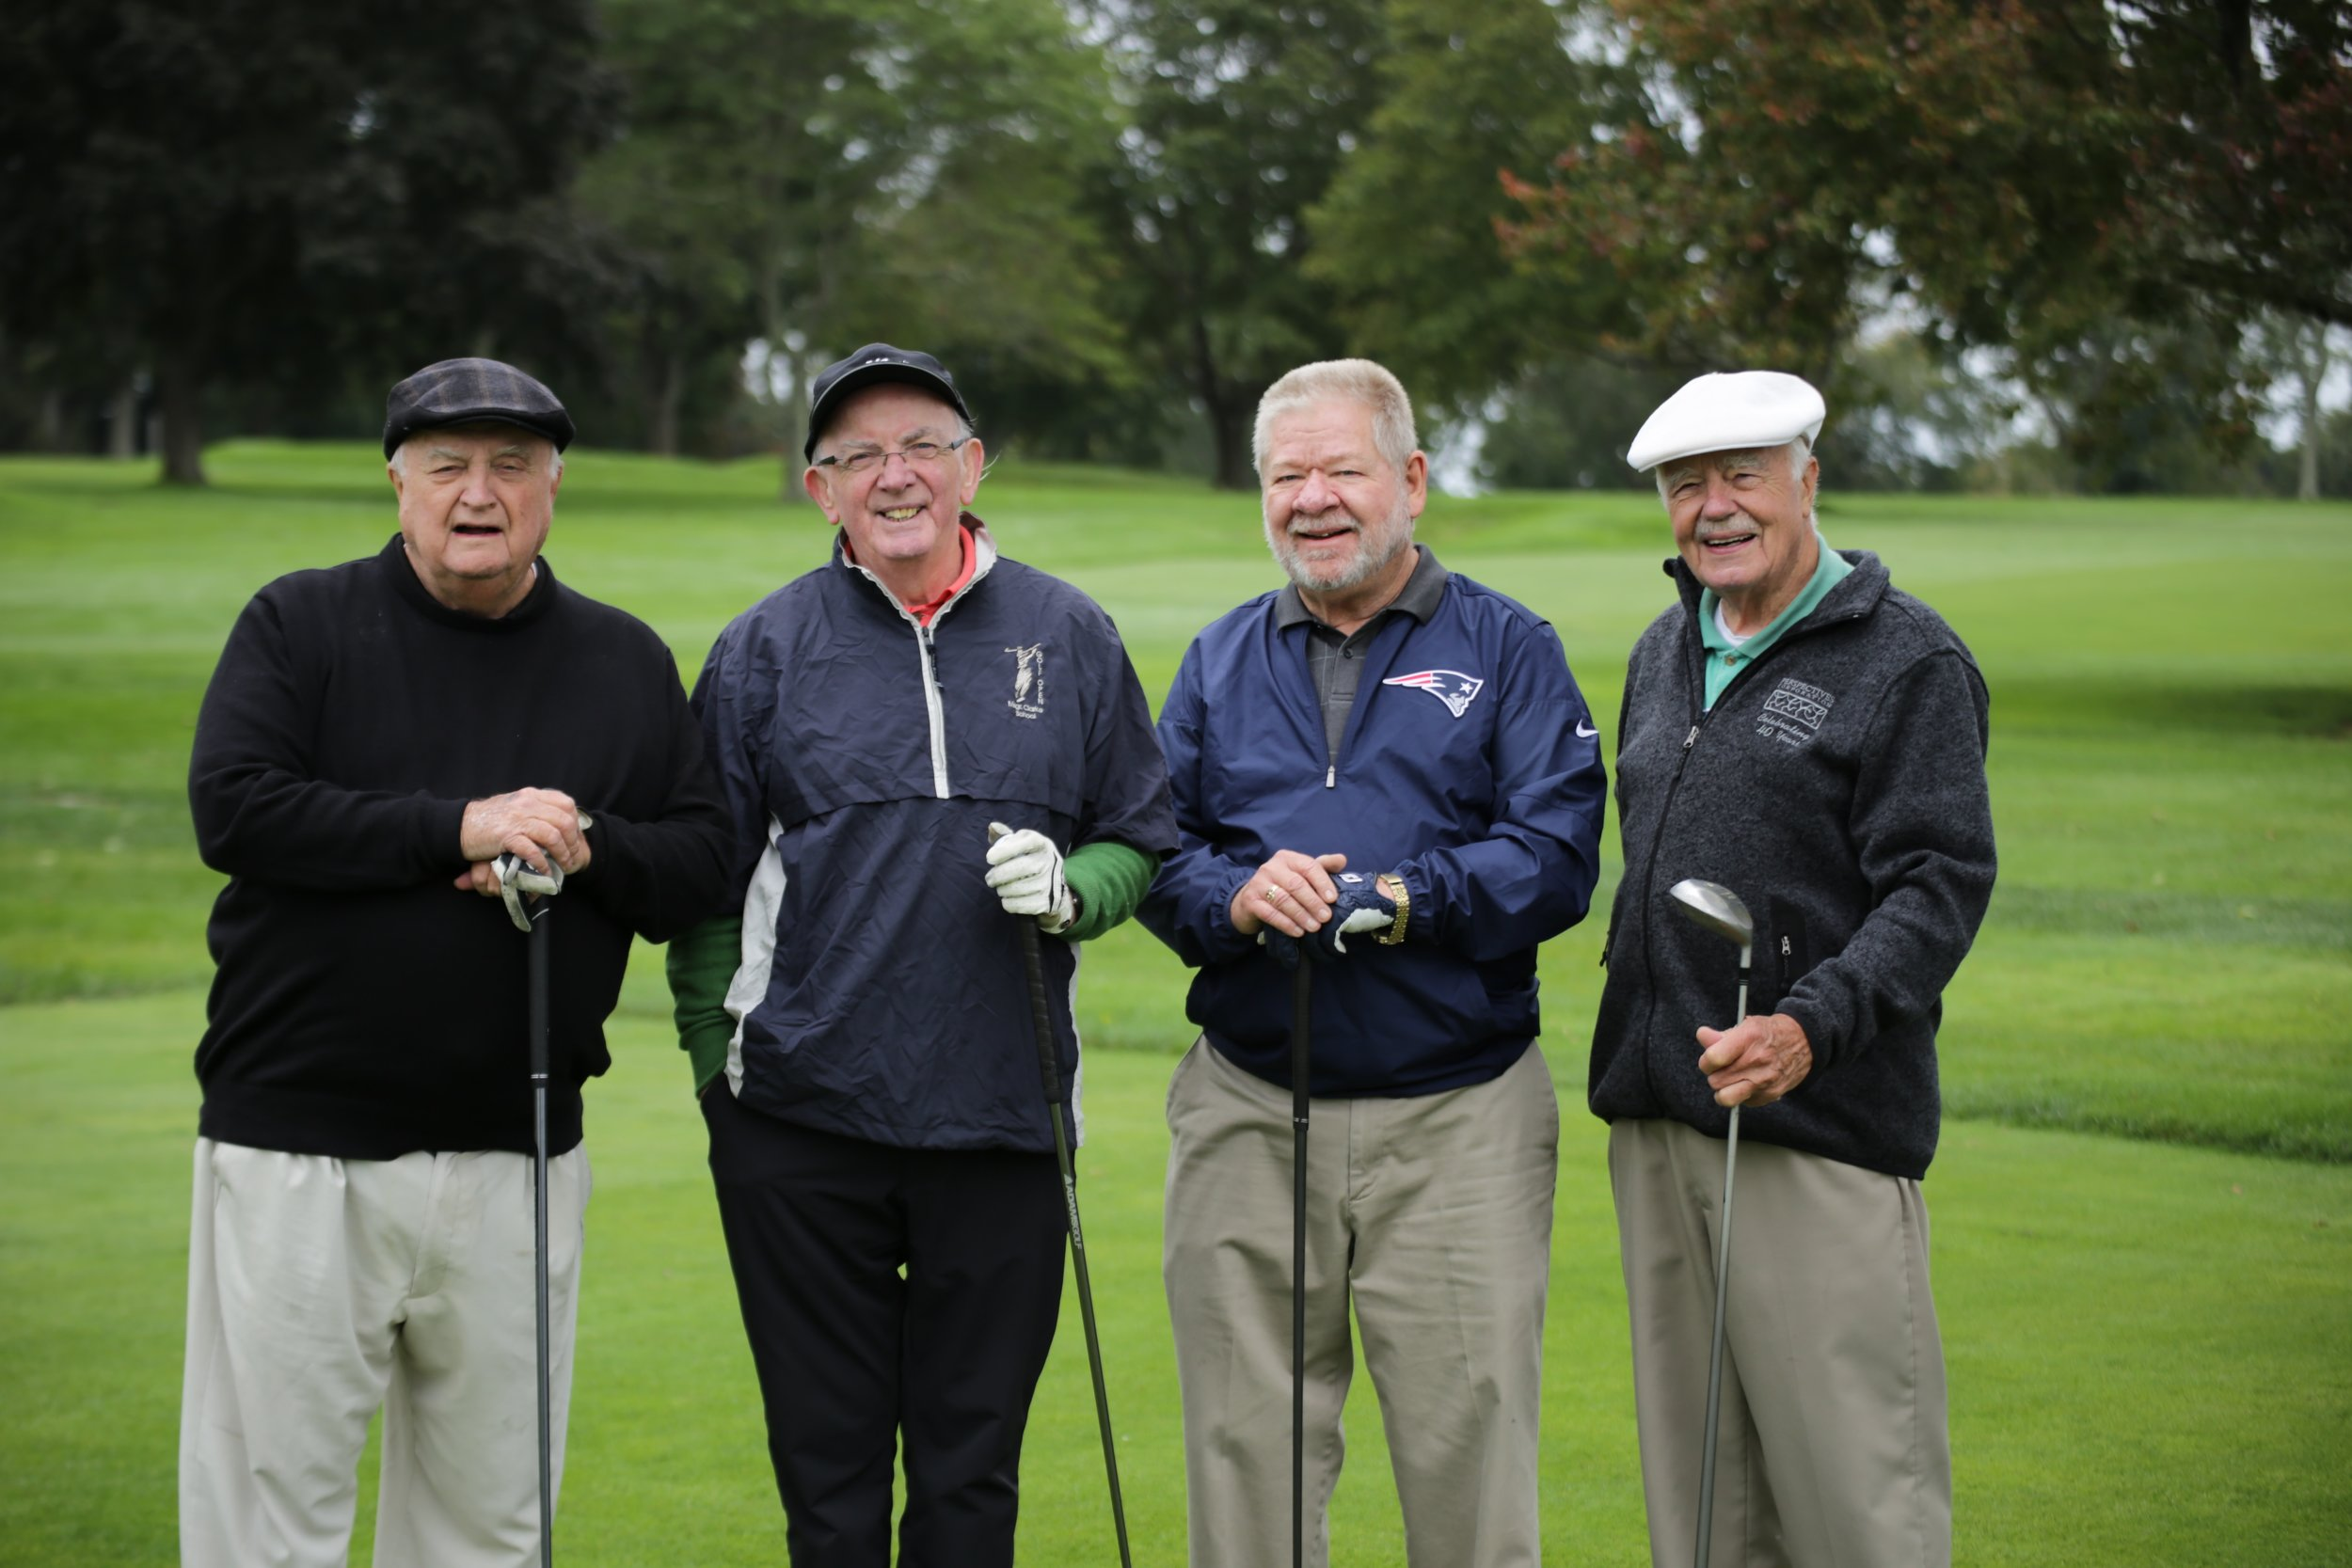 Father Gerry Beirne, Father Nick Smith, Deacon John Dowd and Msgr. Gerry Sabourin enjoyed golfing for the Saints and Scholars of OLM School!